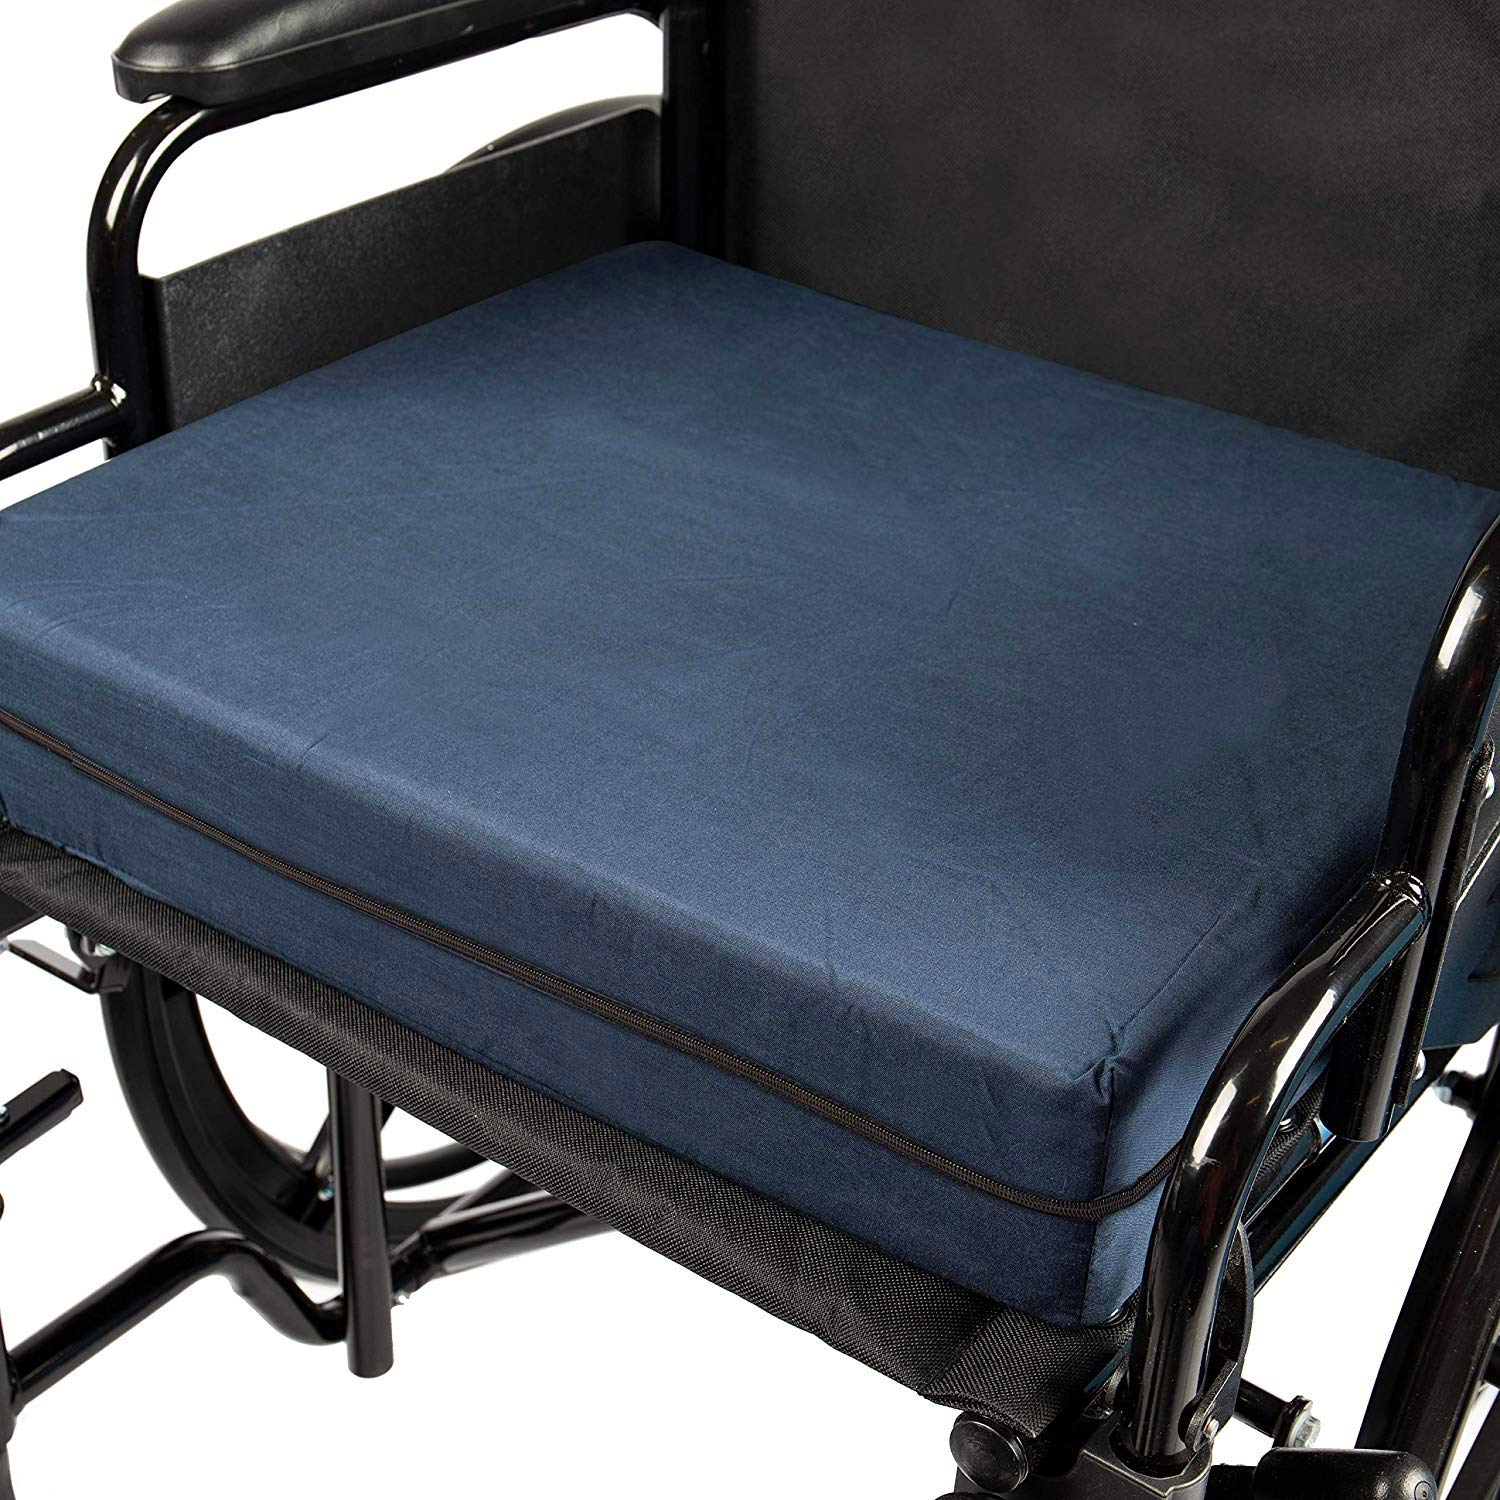 DMI Seat Cushion for Wheelchairs, Mobility Scooters, Office & Kitchen Chairs or Car Seats to Add Support & Comfort while Reducing Pressure & Stress on Back, 4'' thick, 16 x 18, Navy Blue by DMI